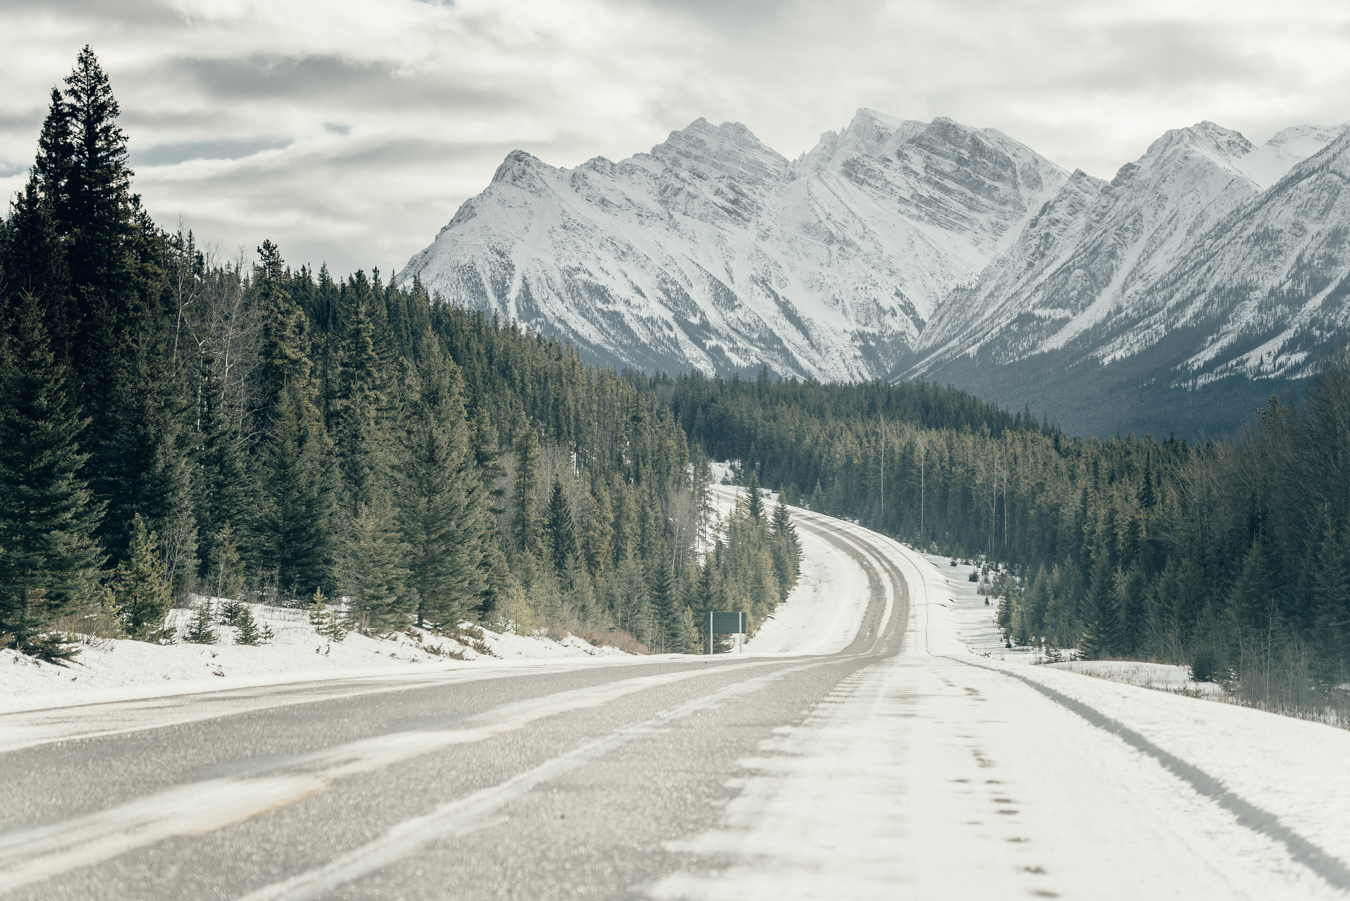 icefields-parkway-christian-frumolt-fotografie_web_small-69